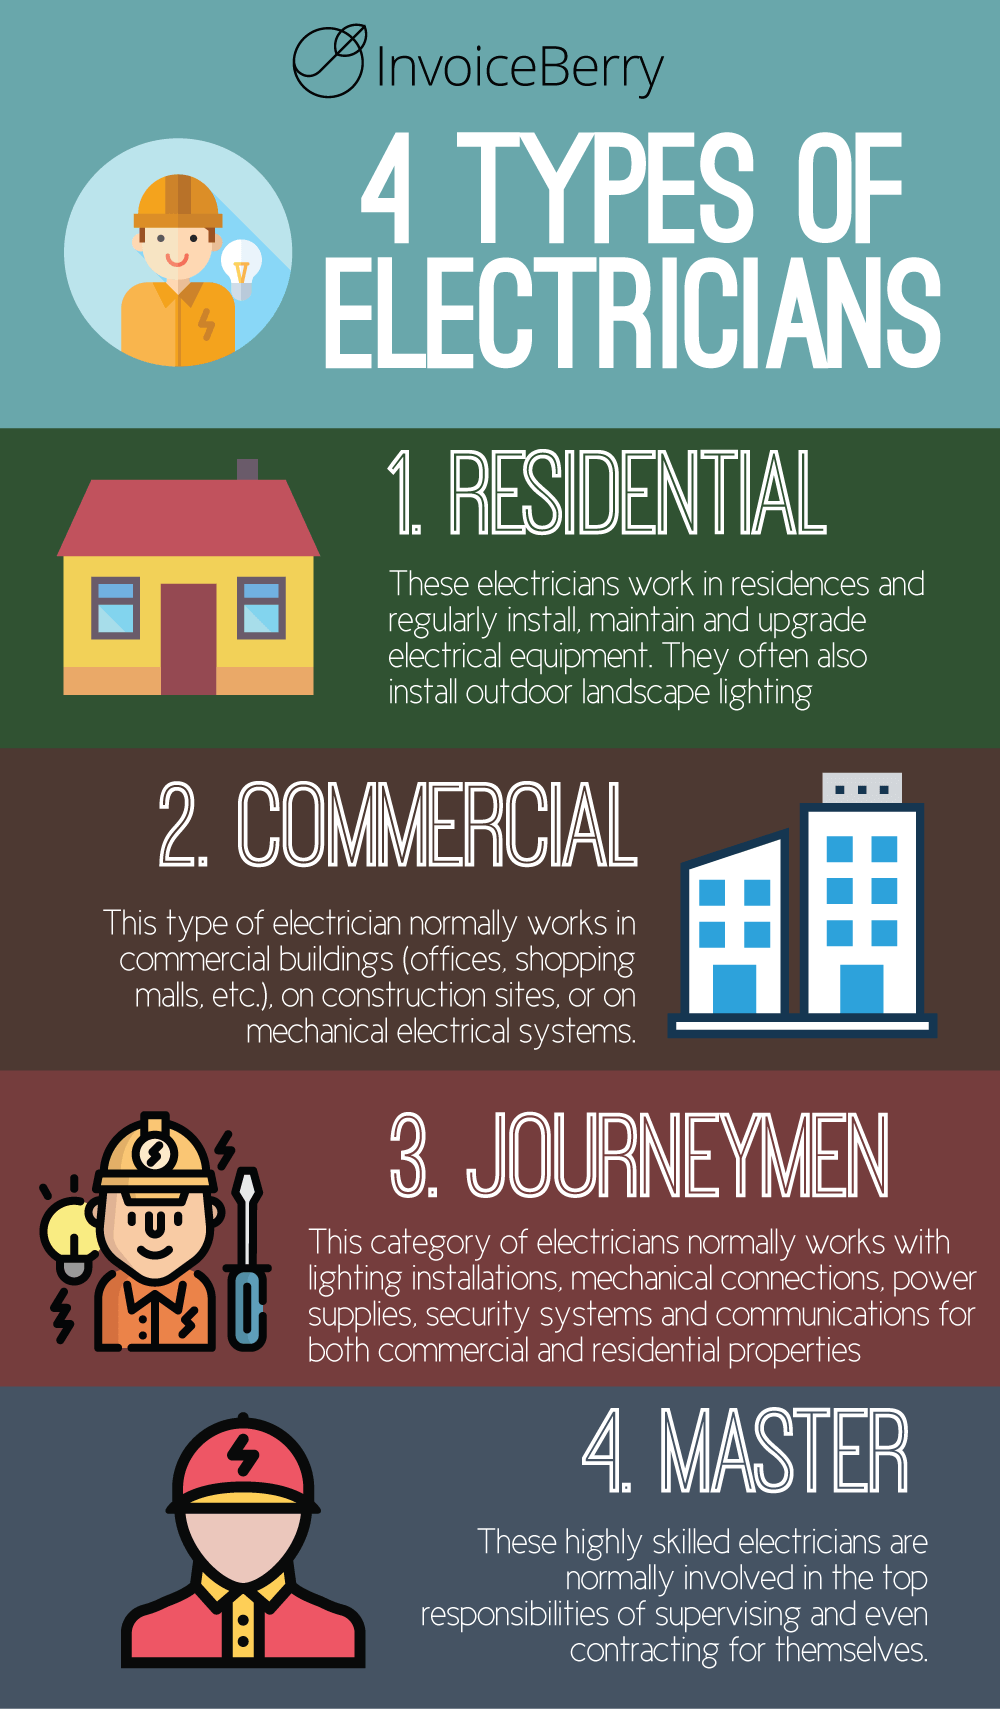 These are the four types of electricians